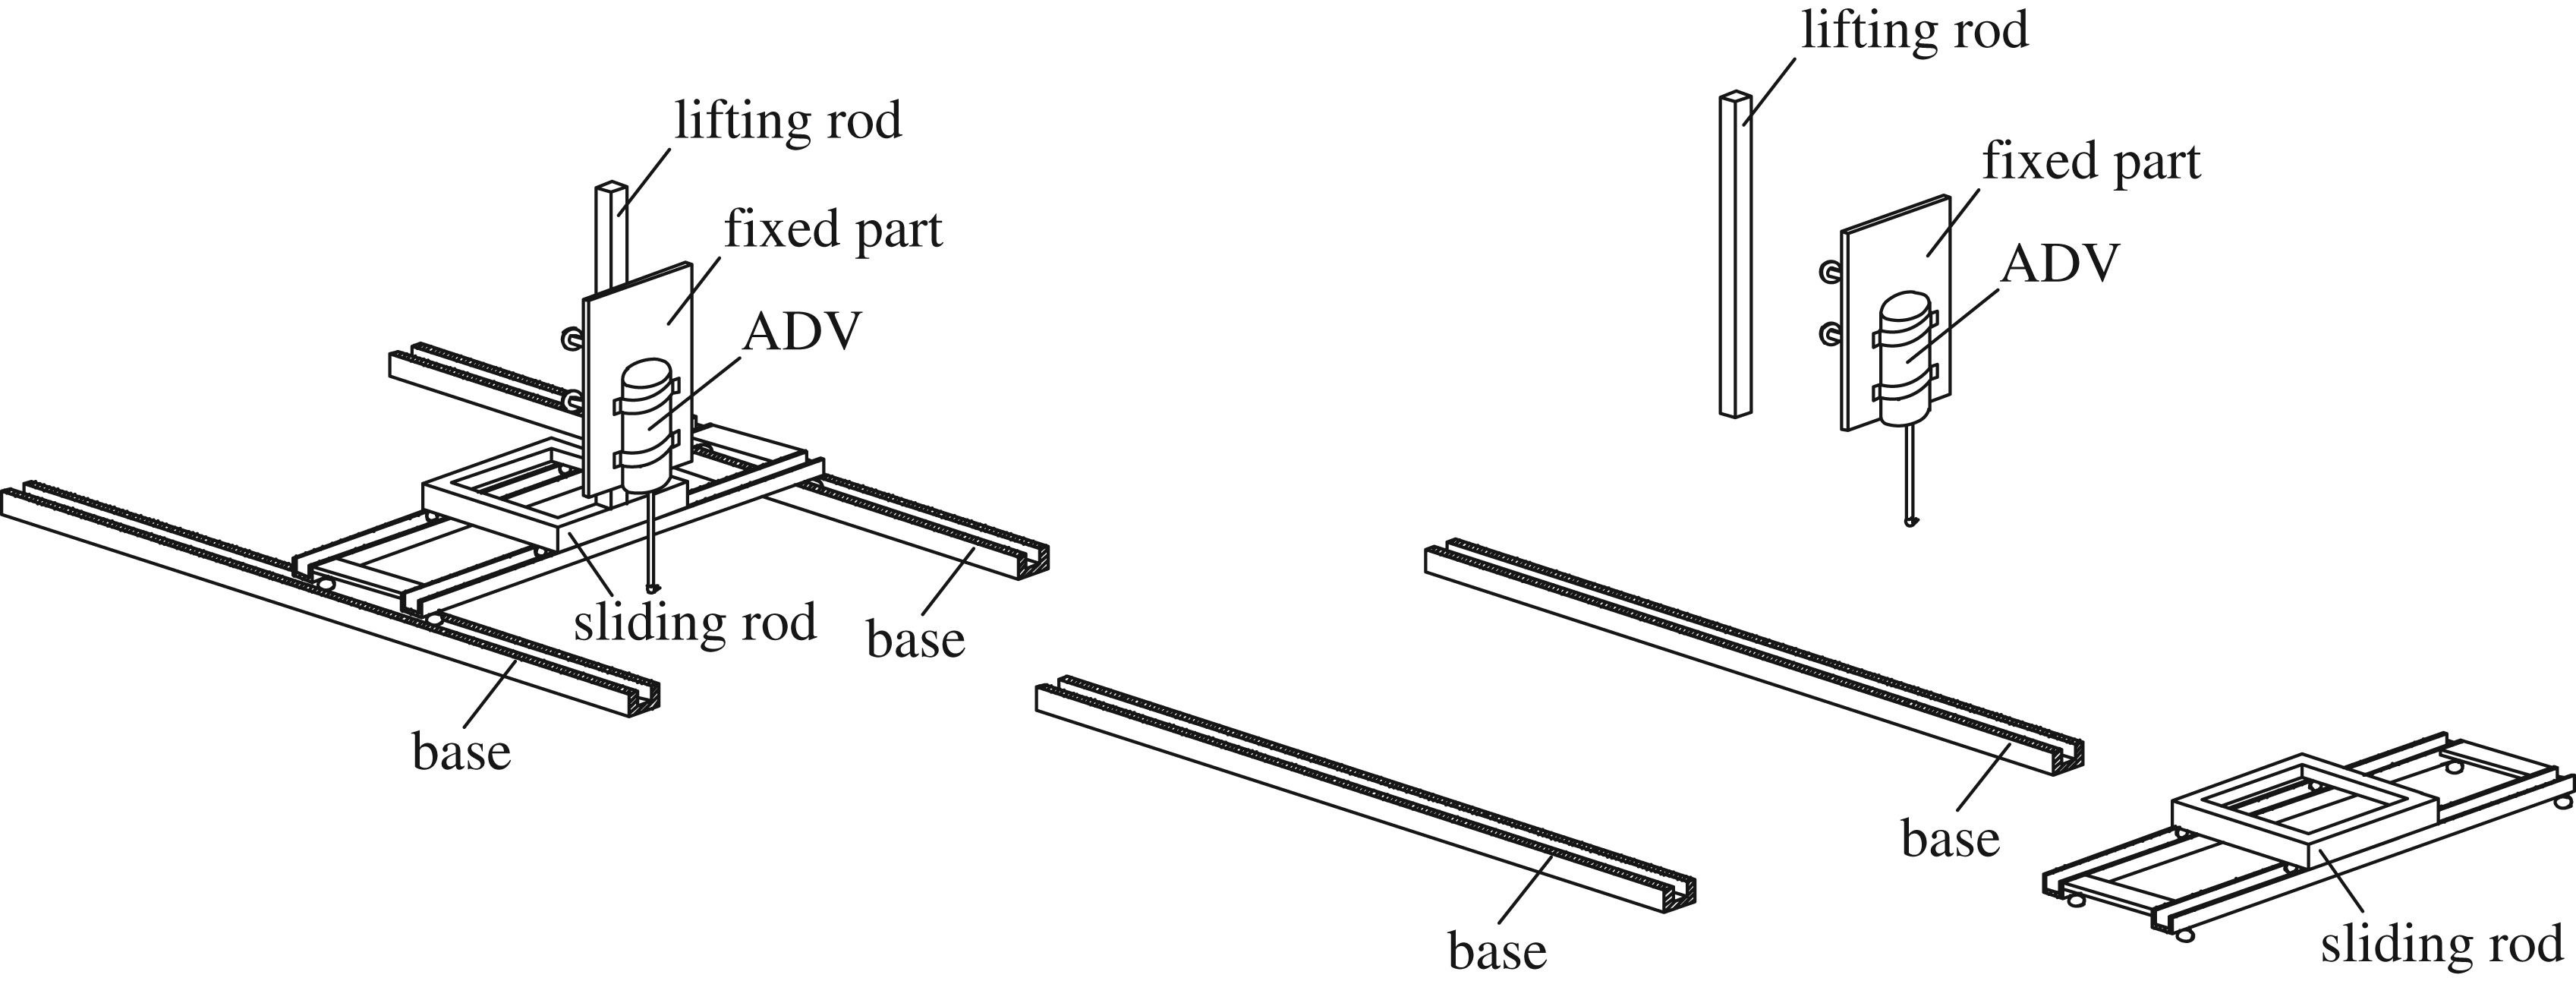 Hydrodynamics Of An In Pond Raceway System With An